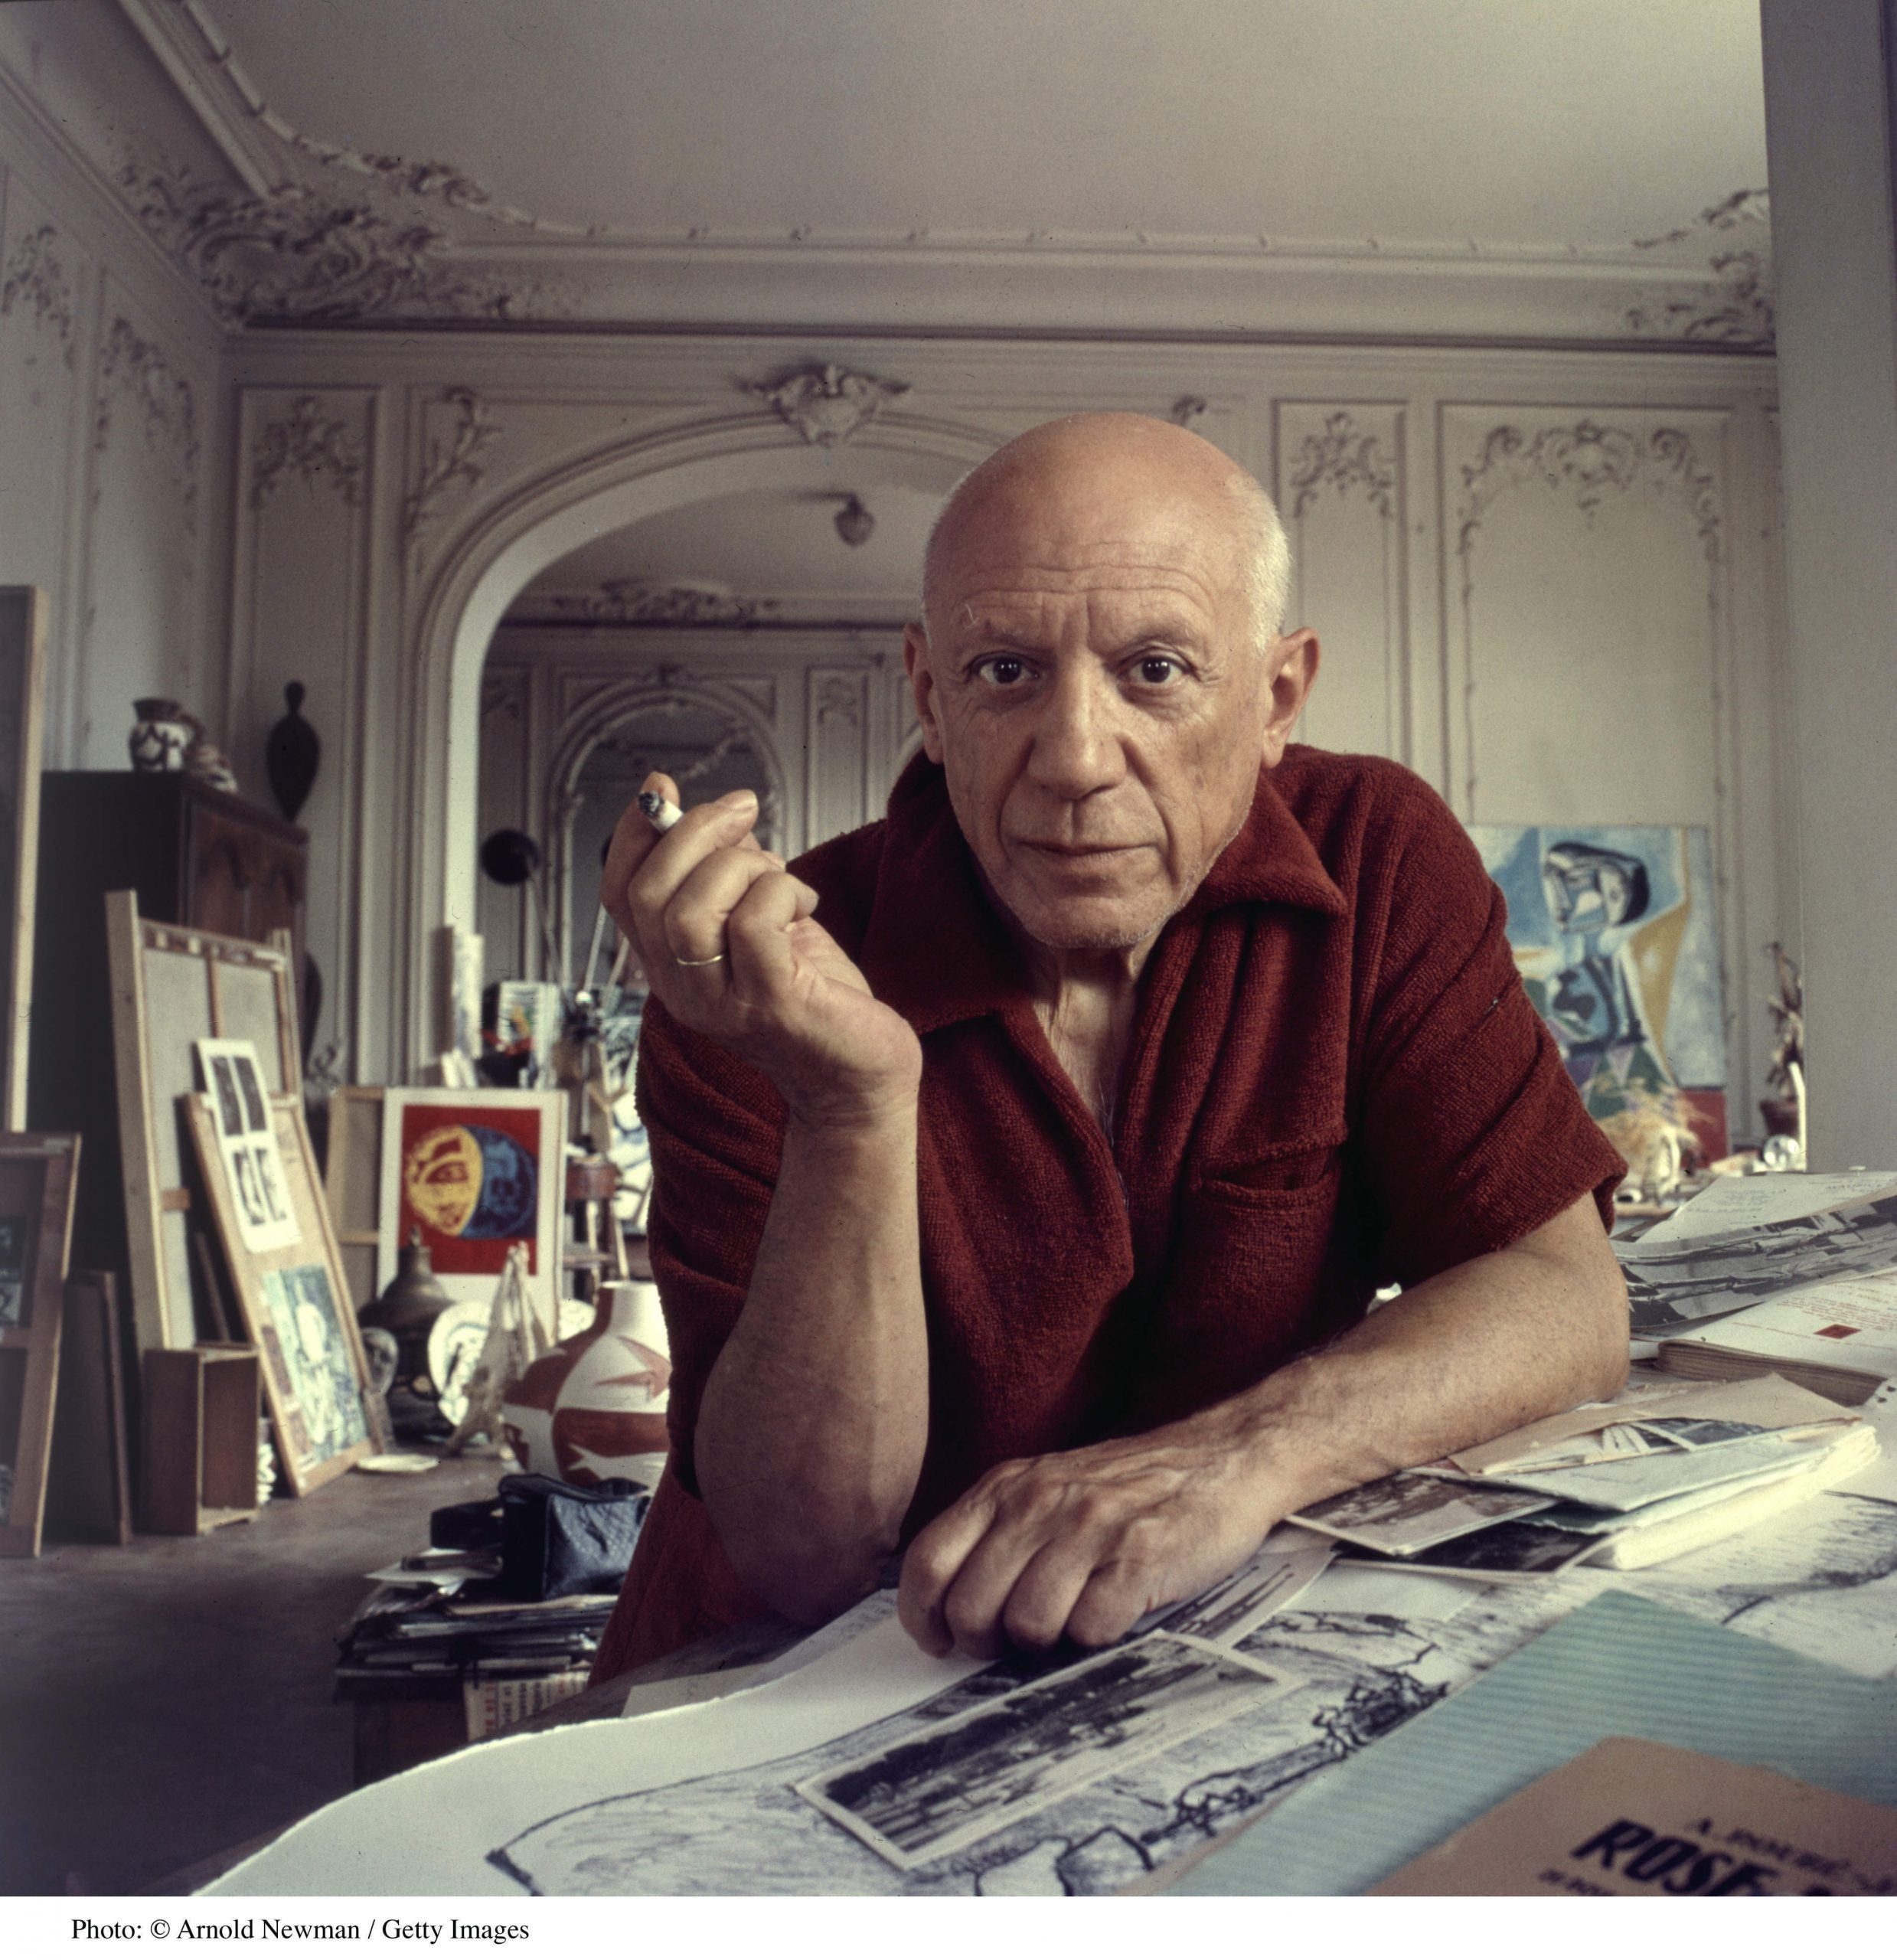 Picasso and the art of simile